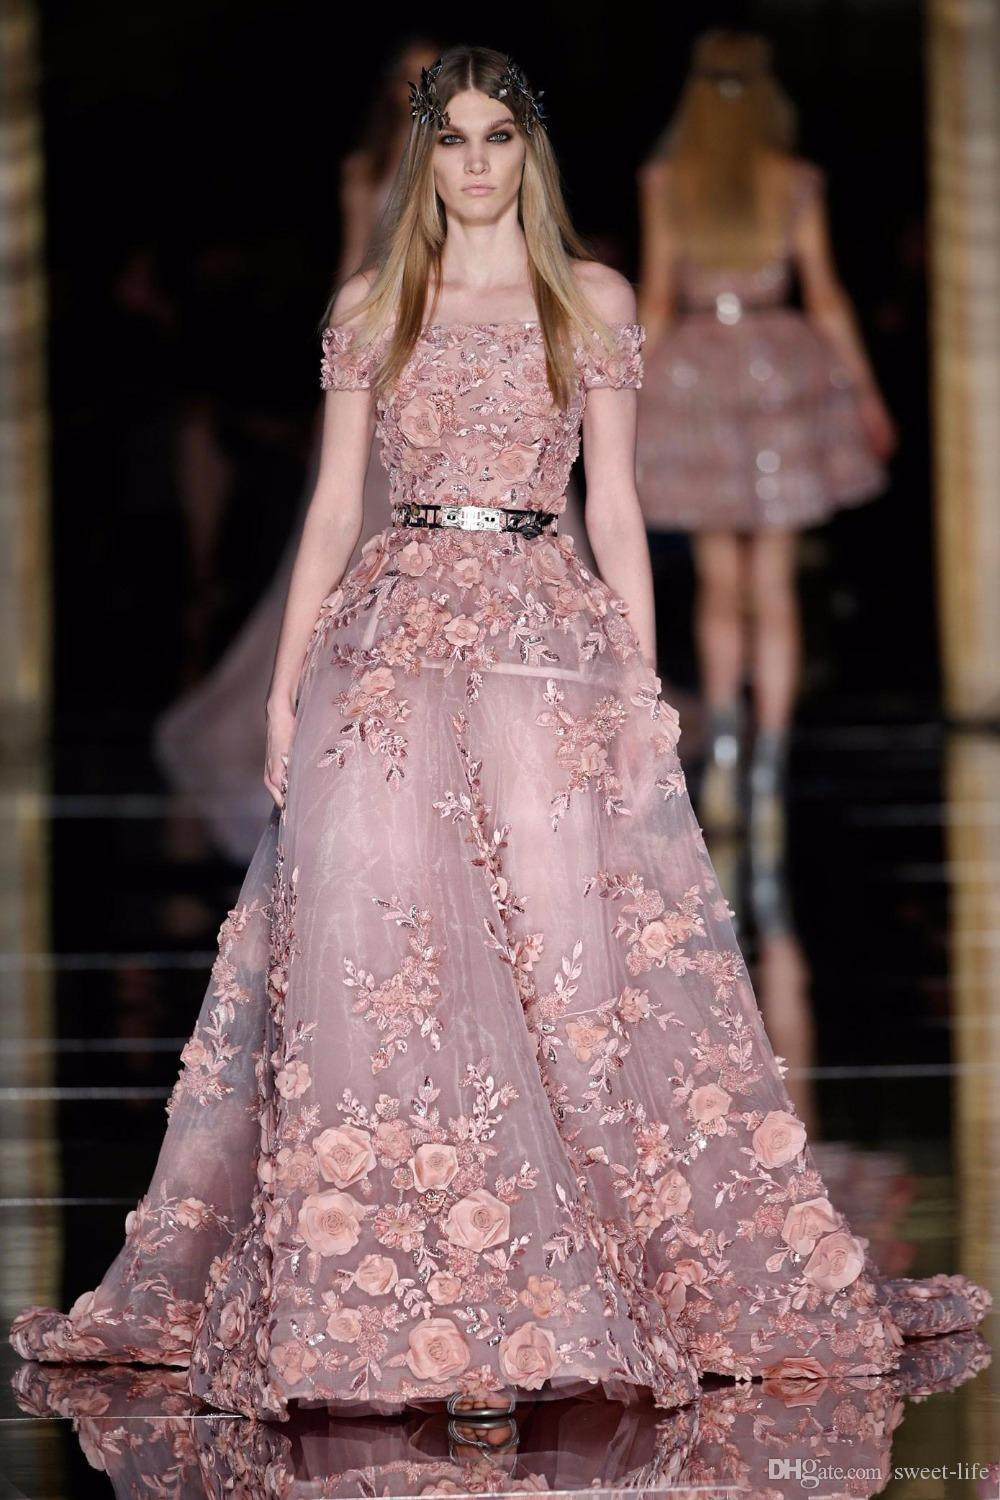 04894597913be 2018 New Couture Zuhair Murad Evening Dresses for Sale 3D Flora Appliques  Dusty Pink Prom Dress Plus Size Custom Made Latest Party Gown